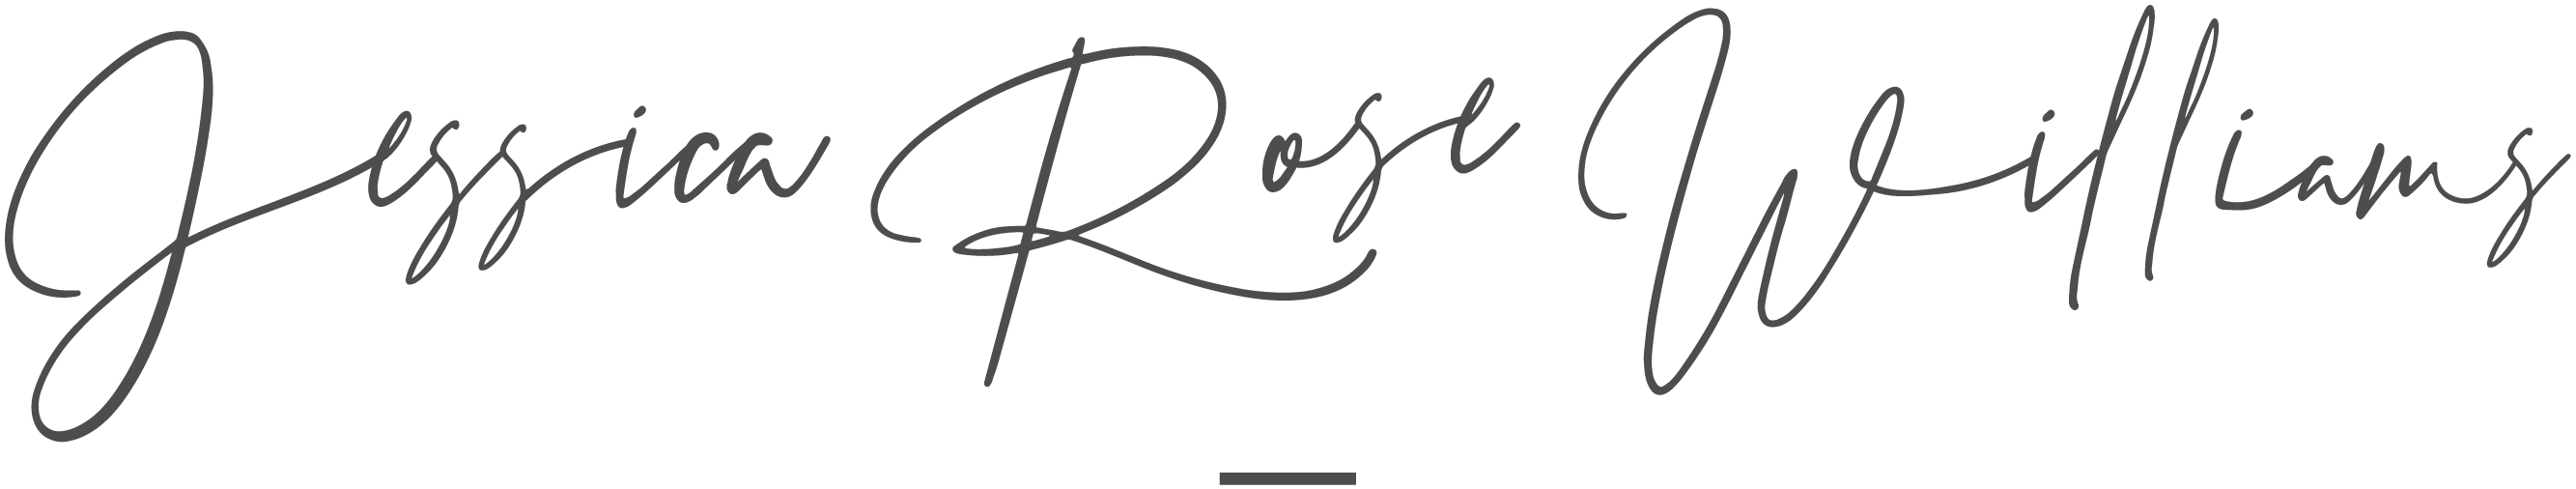 Drawing road minimalist. Home page jessica rose